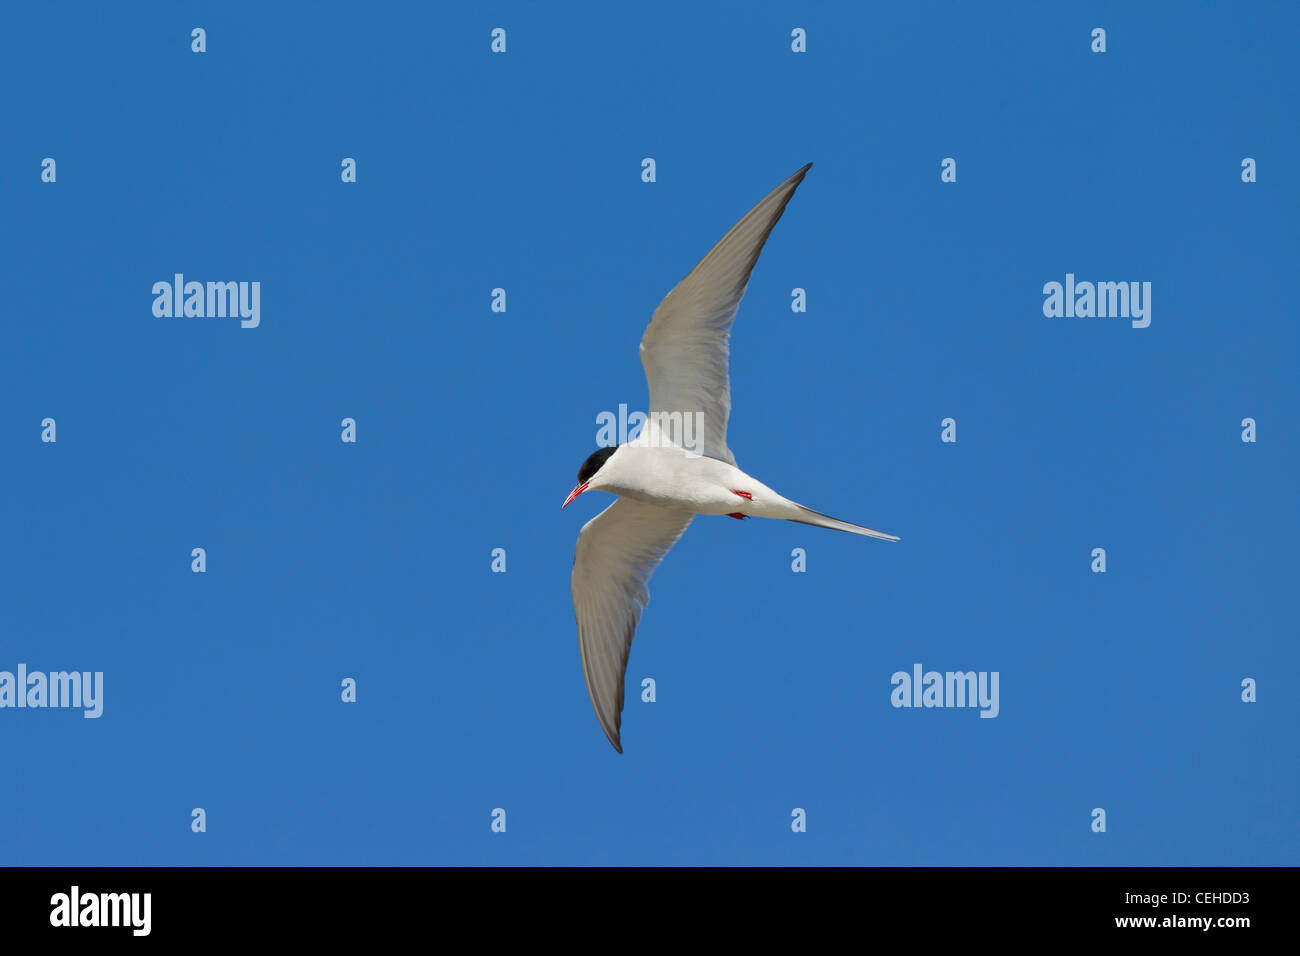 Arctic Tern (Sterna paradisaea) in flight, Wadden Sea, Germany - Stock Image